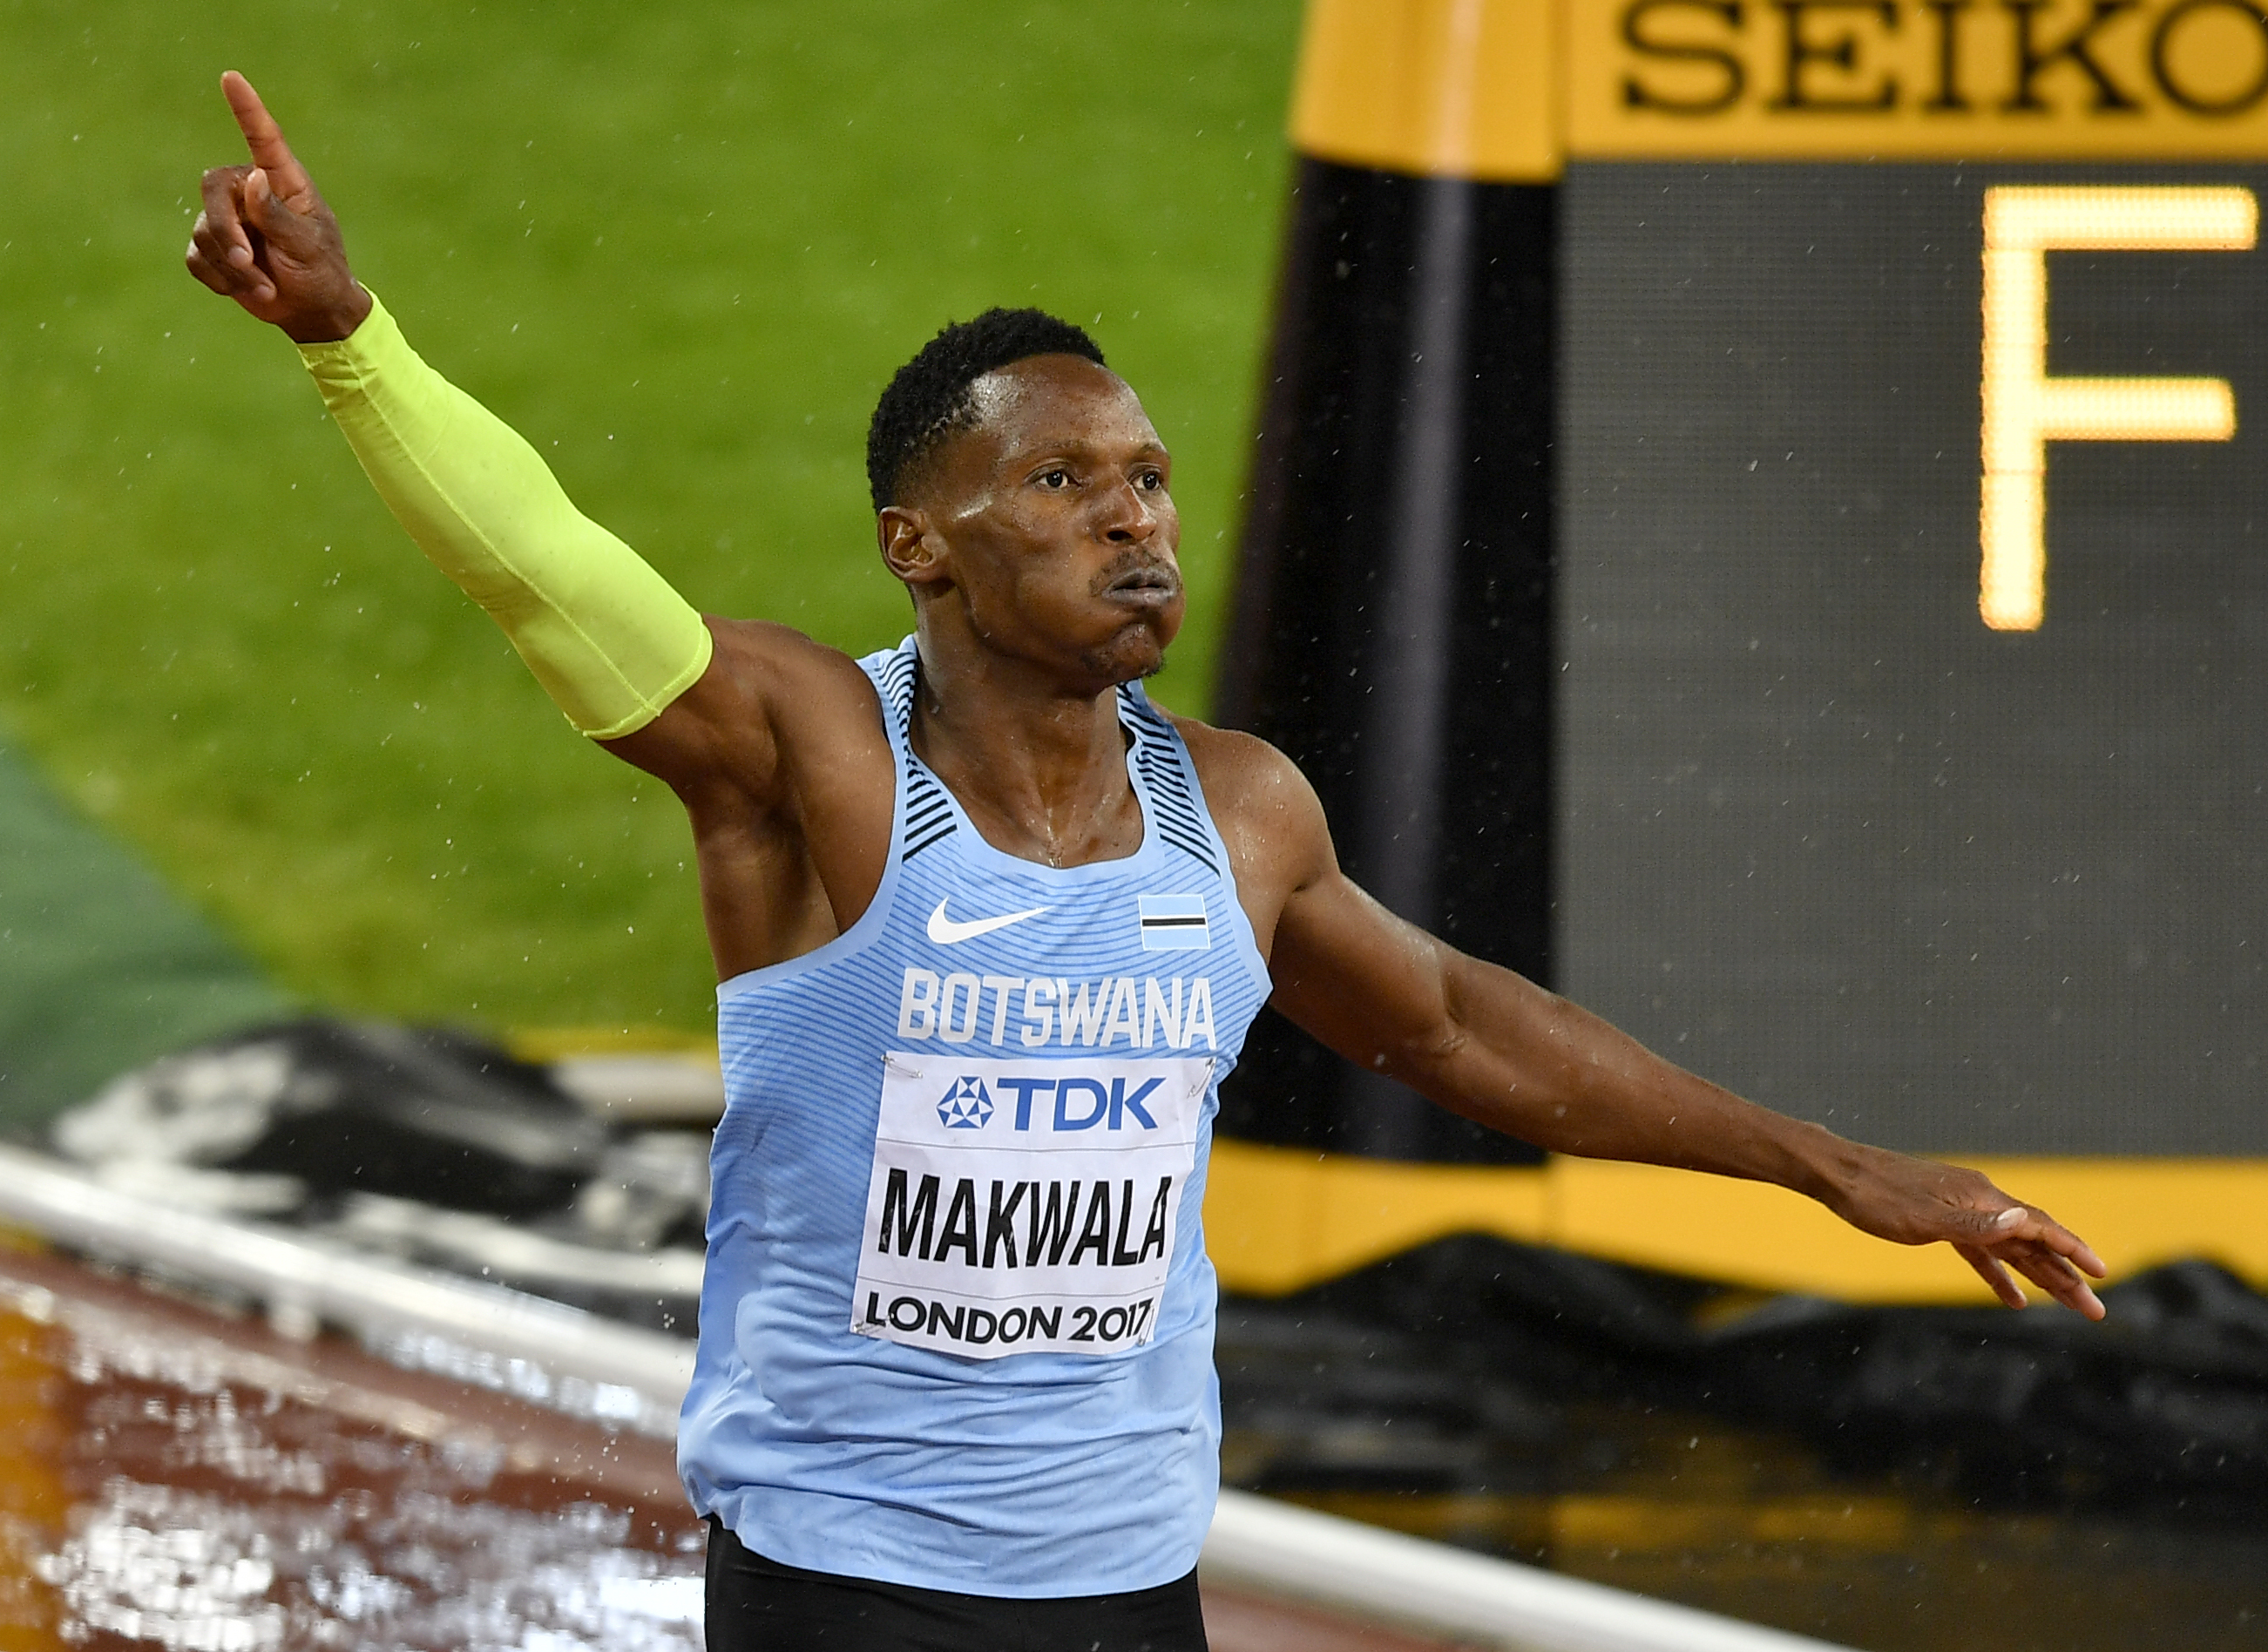 Botswana's Isaac Makwala reacts after crossing the finish line in his heat of the Men's 200 meters semifinal at the World Athletics Championships in London Wednesday, Aug. 9, 2017. (AP Photo/Martin Meissner)